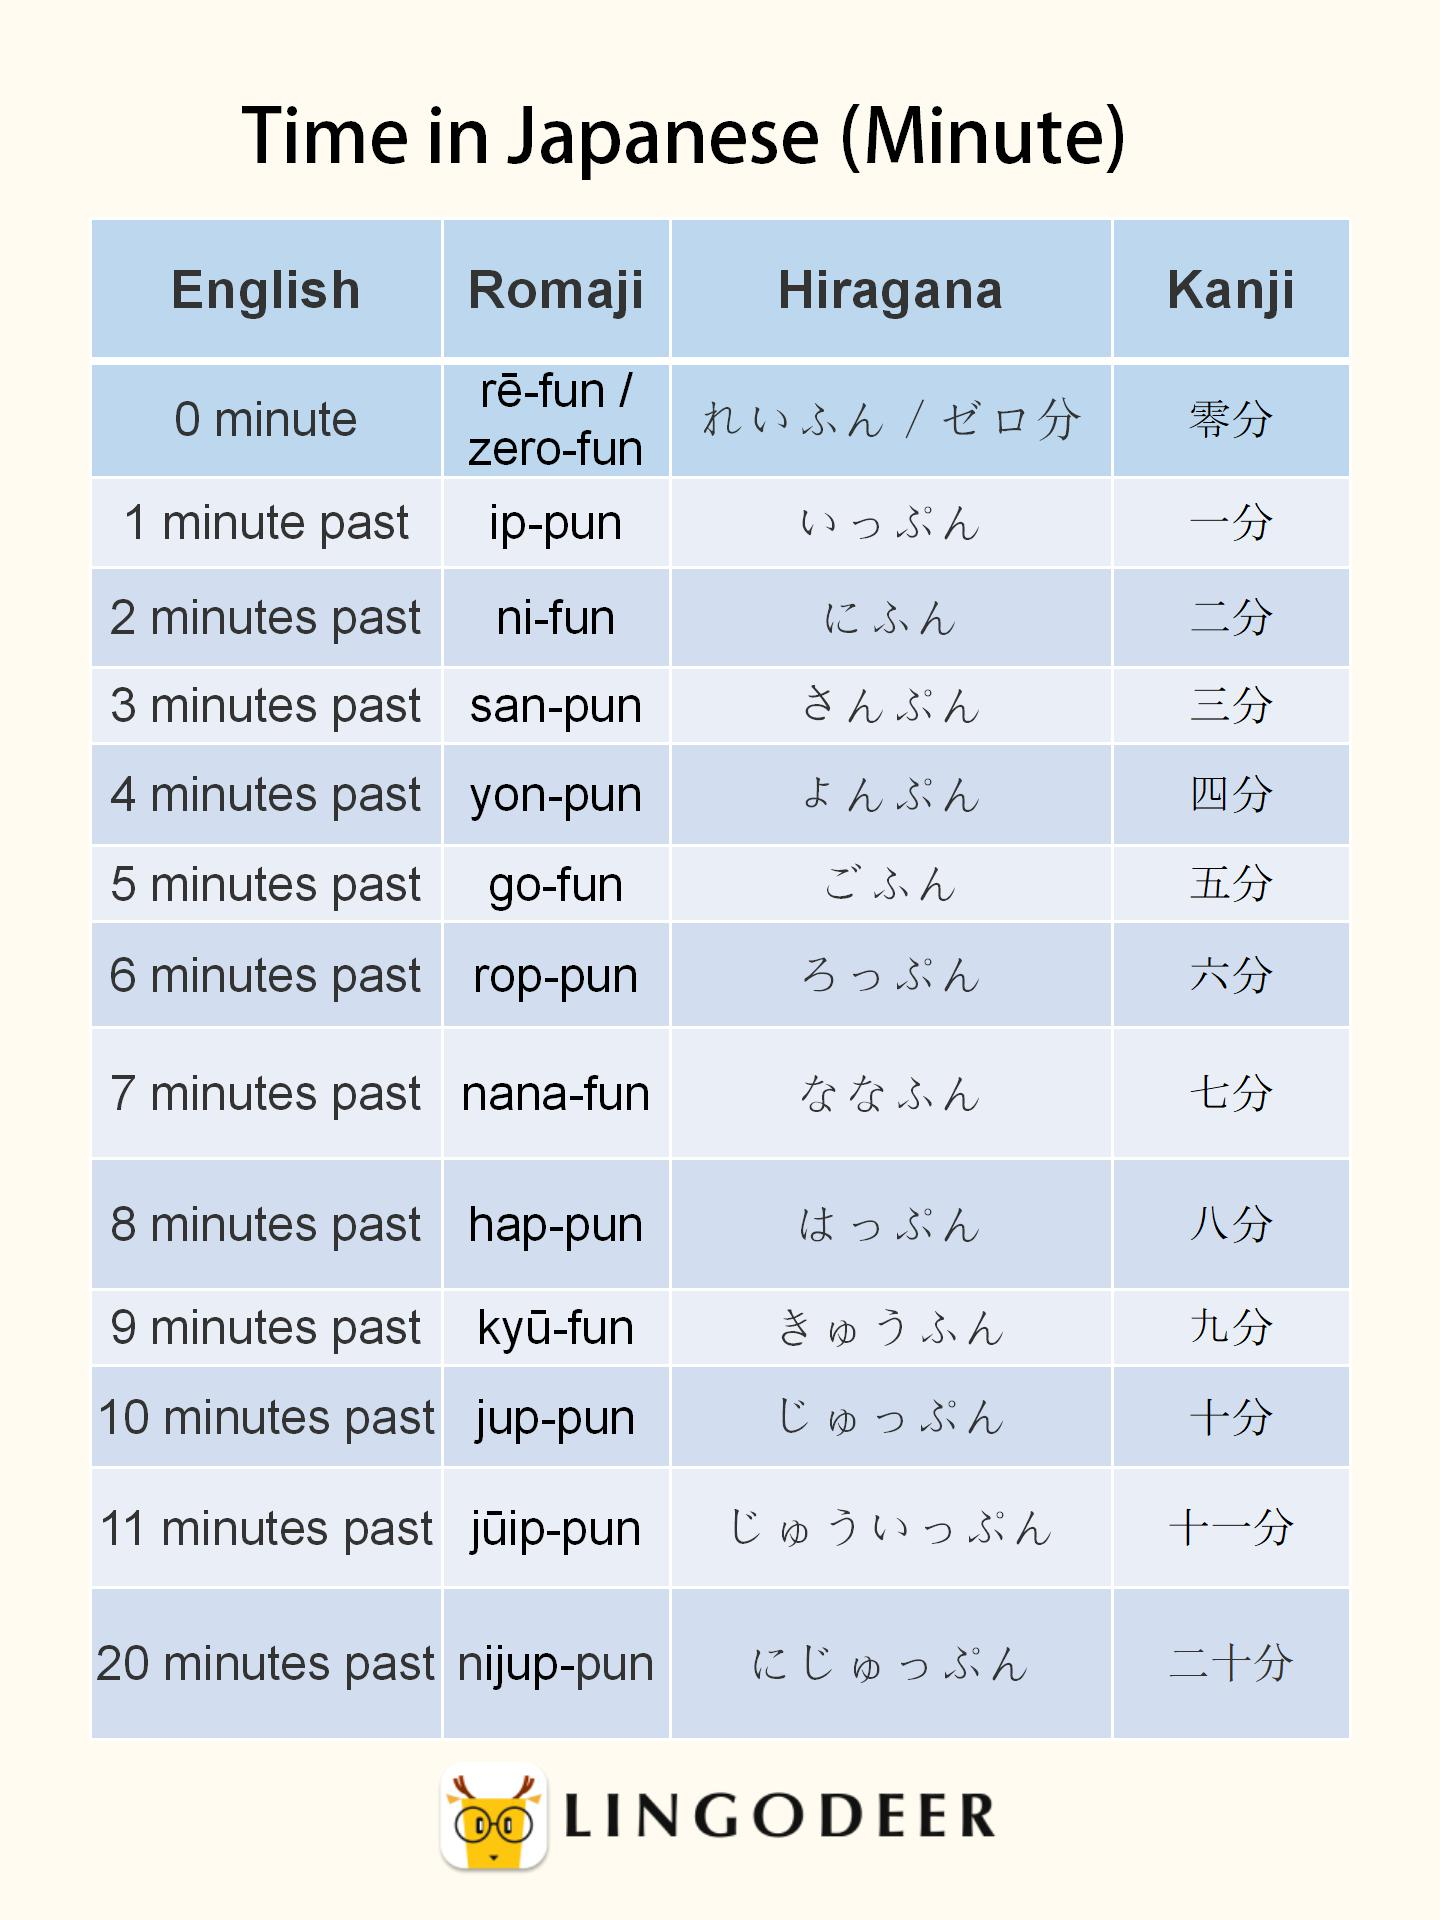 Time in Japanese (Minute)